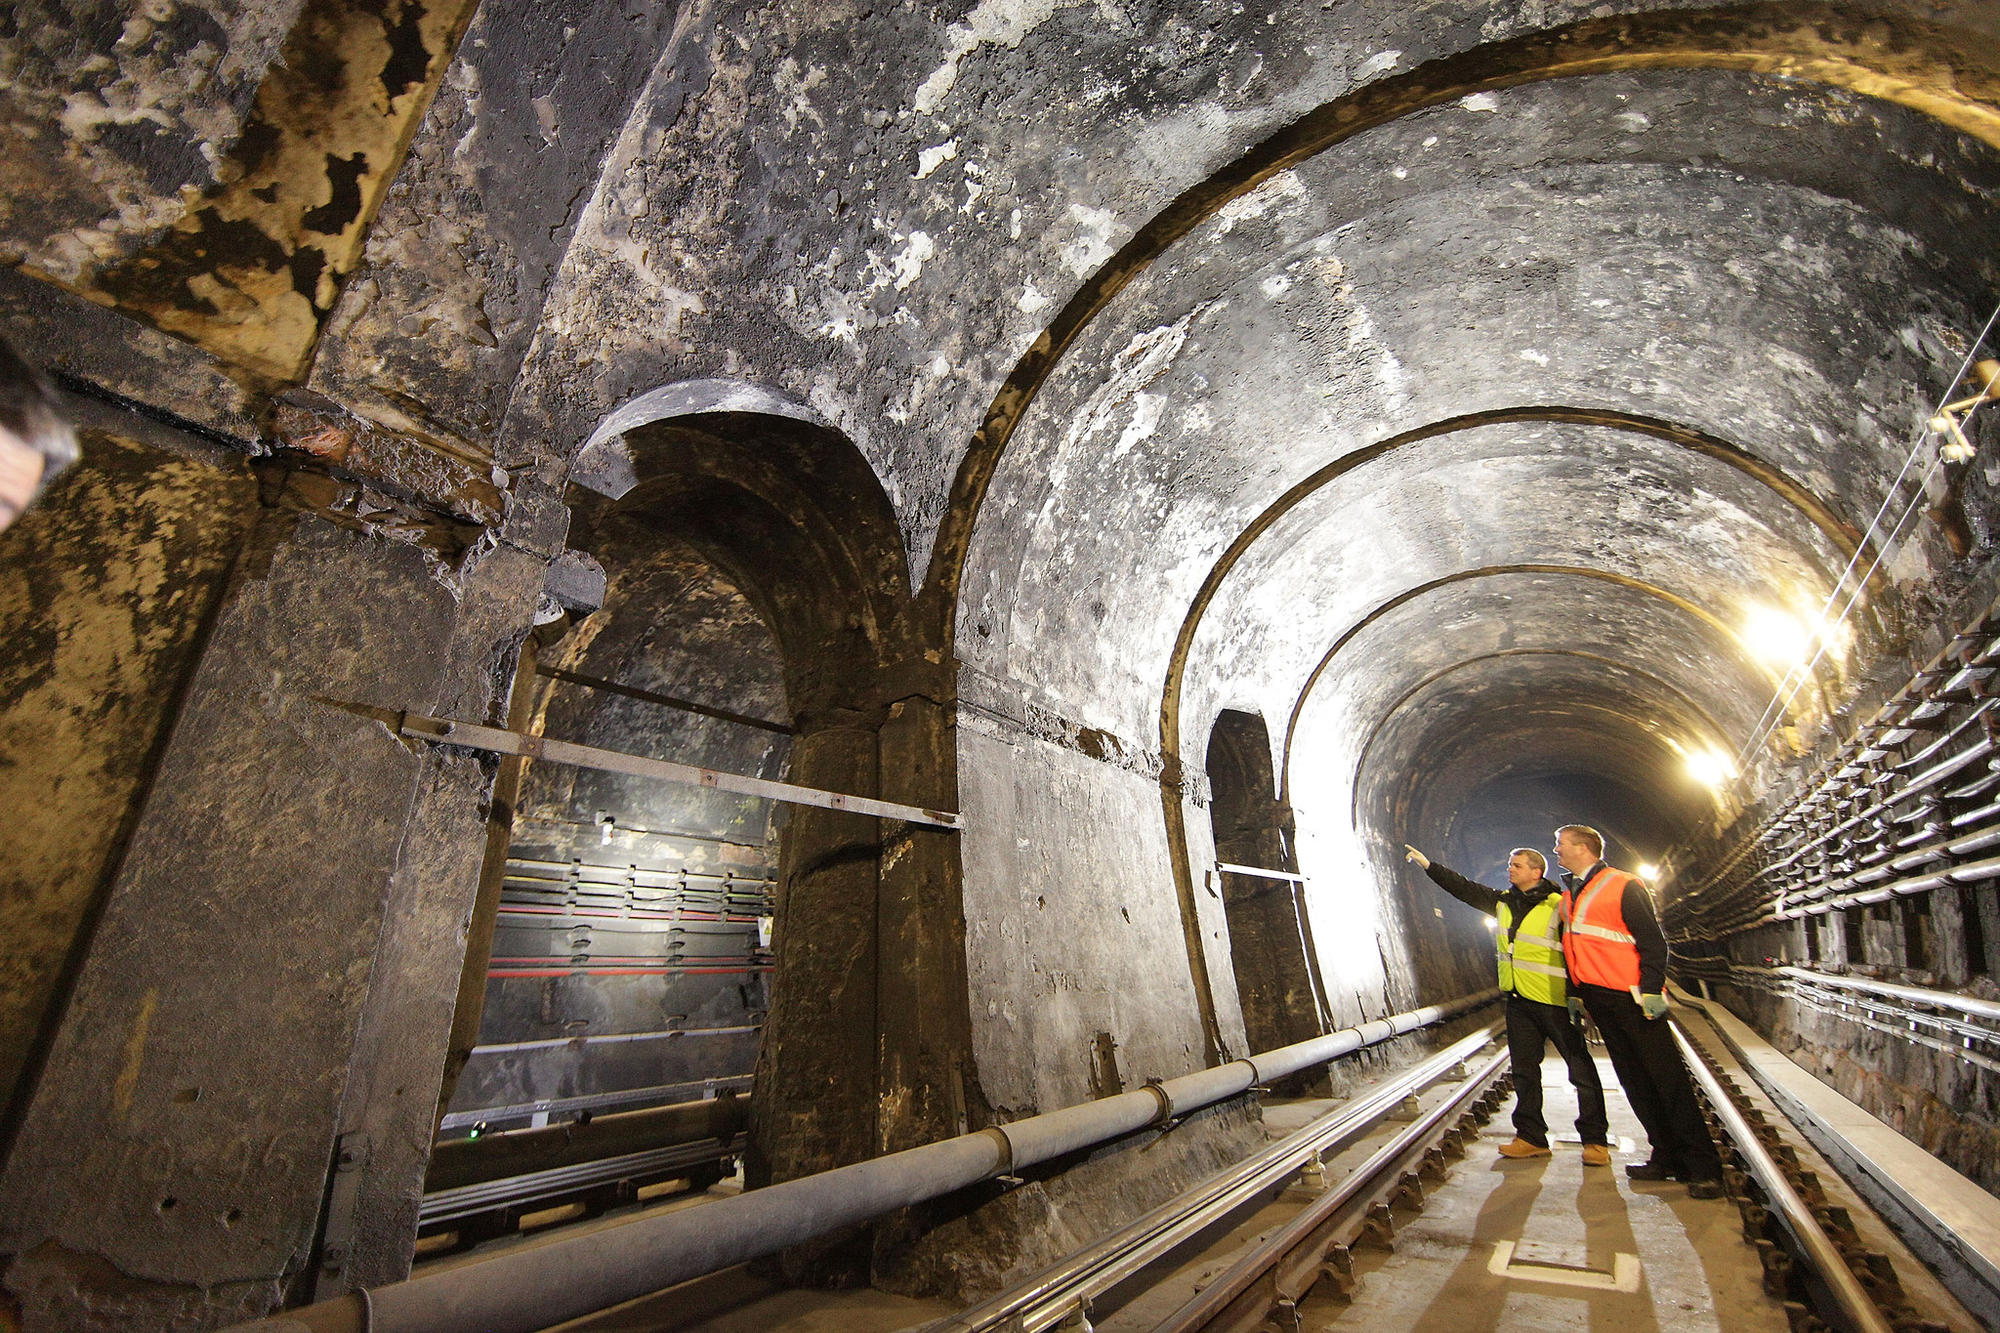 A Rare Glimpse Of London's Oldest Underwater Tunnel